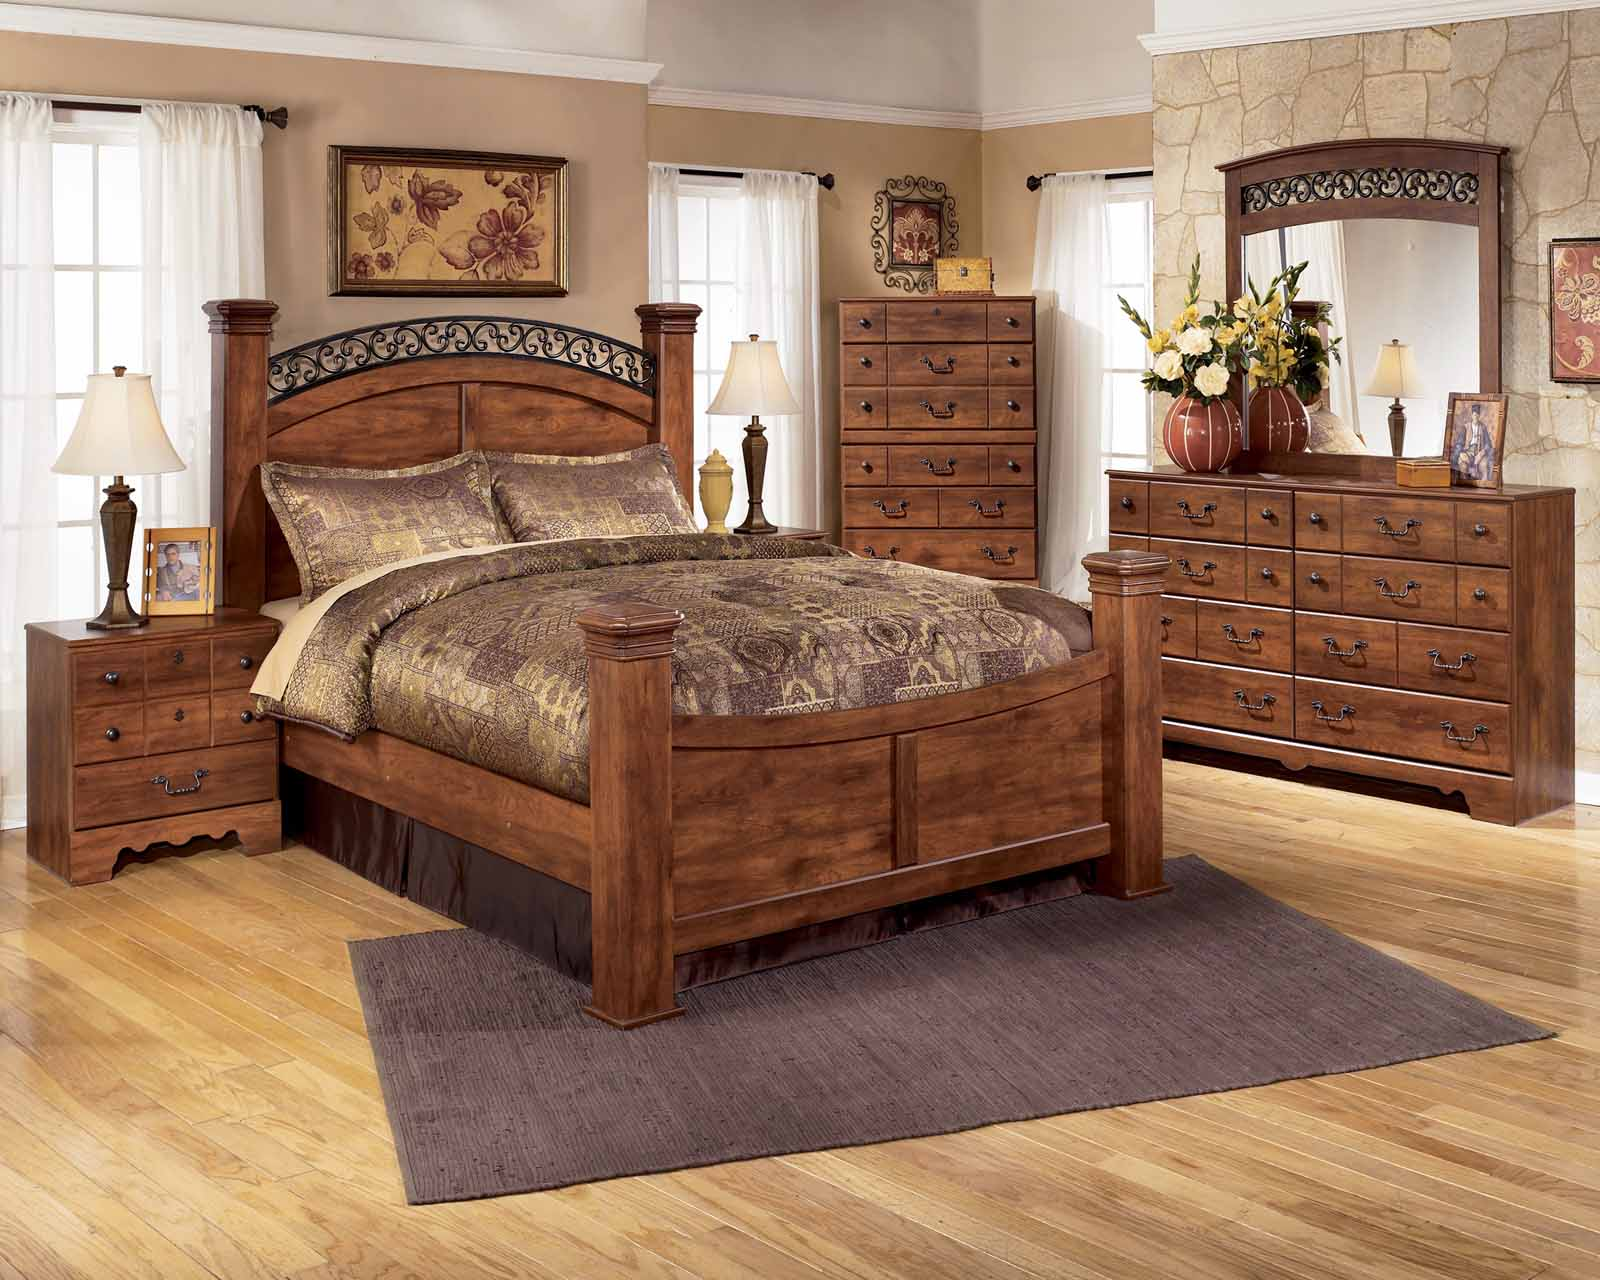 Timberline 4 piece poster bedroom set in cherry for 3 bedroom set